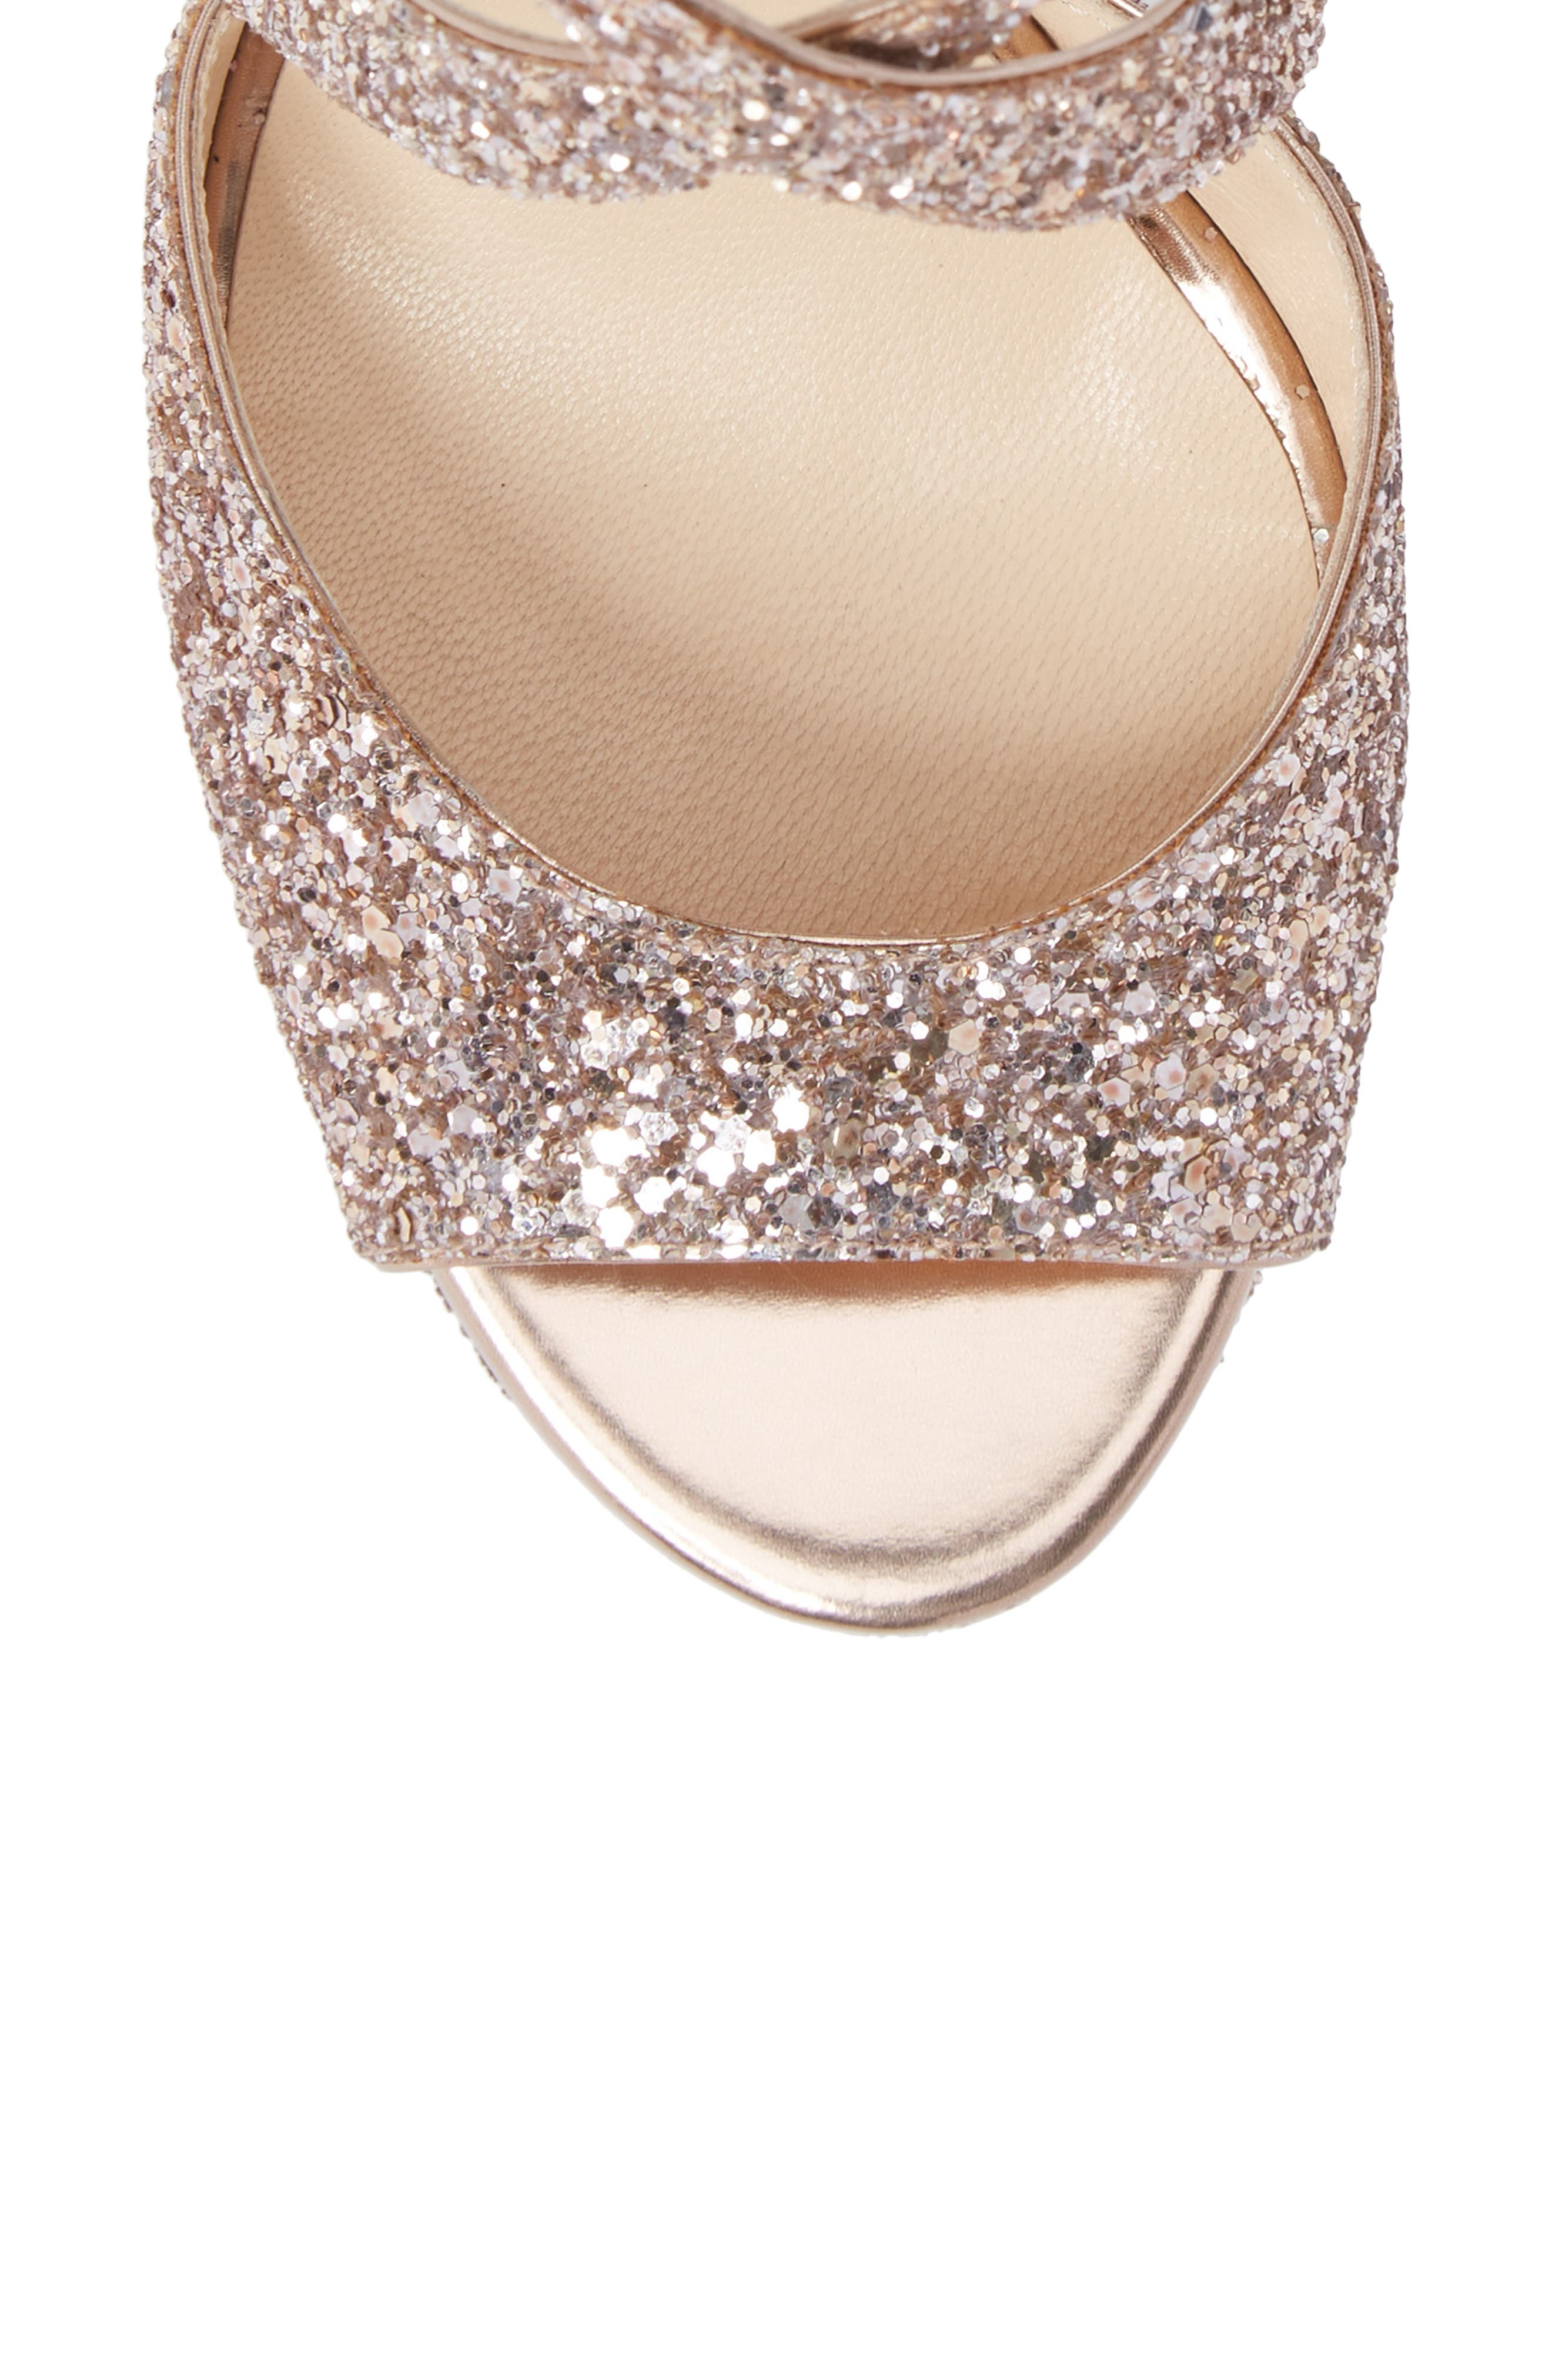 April Glitter Platform Sandal,                             Alternate thumbnail 5, color,                             650